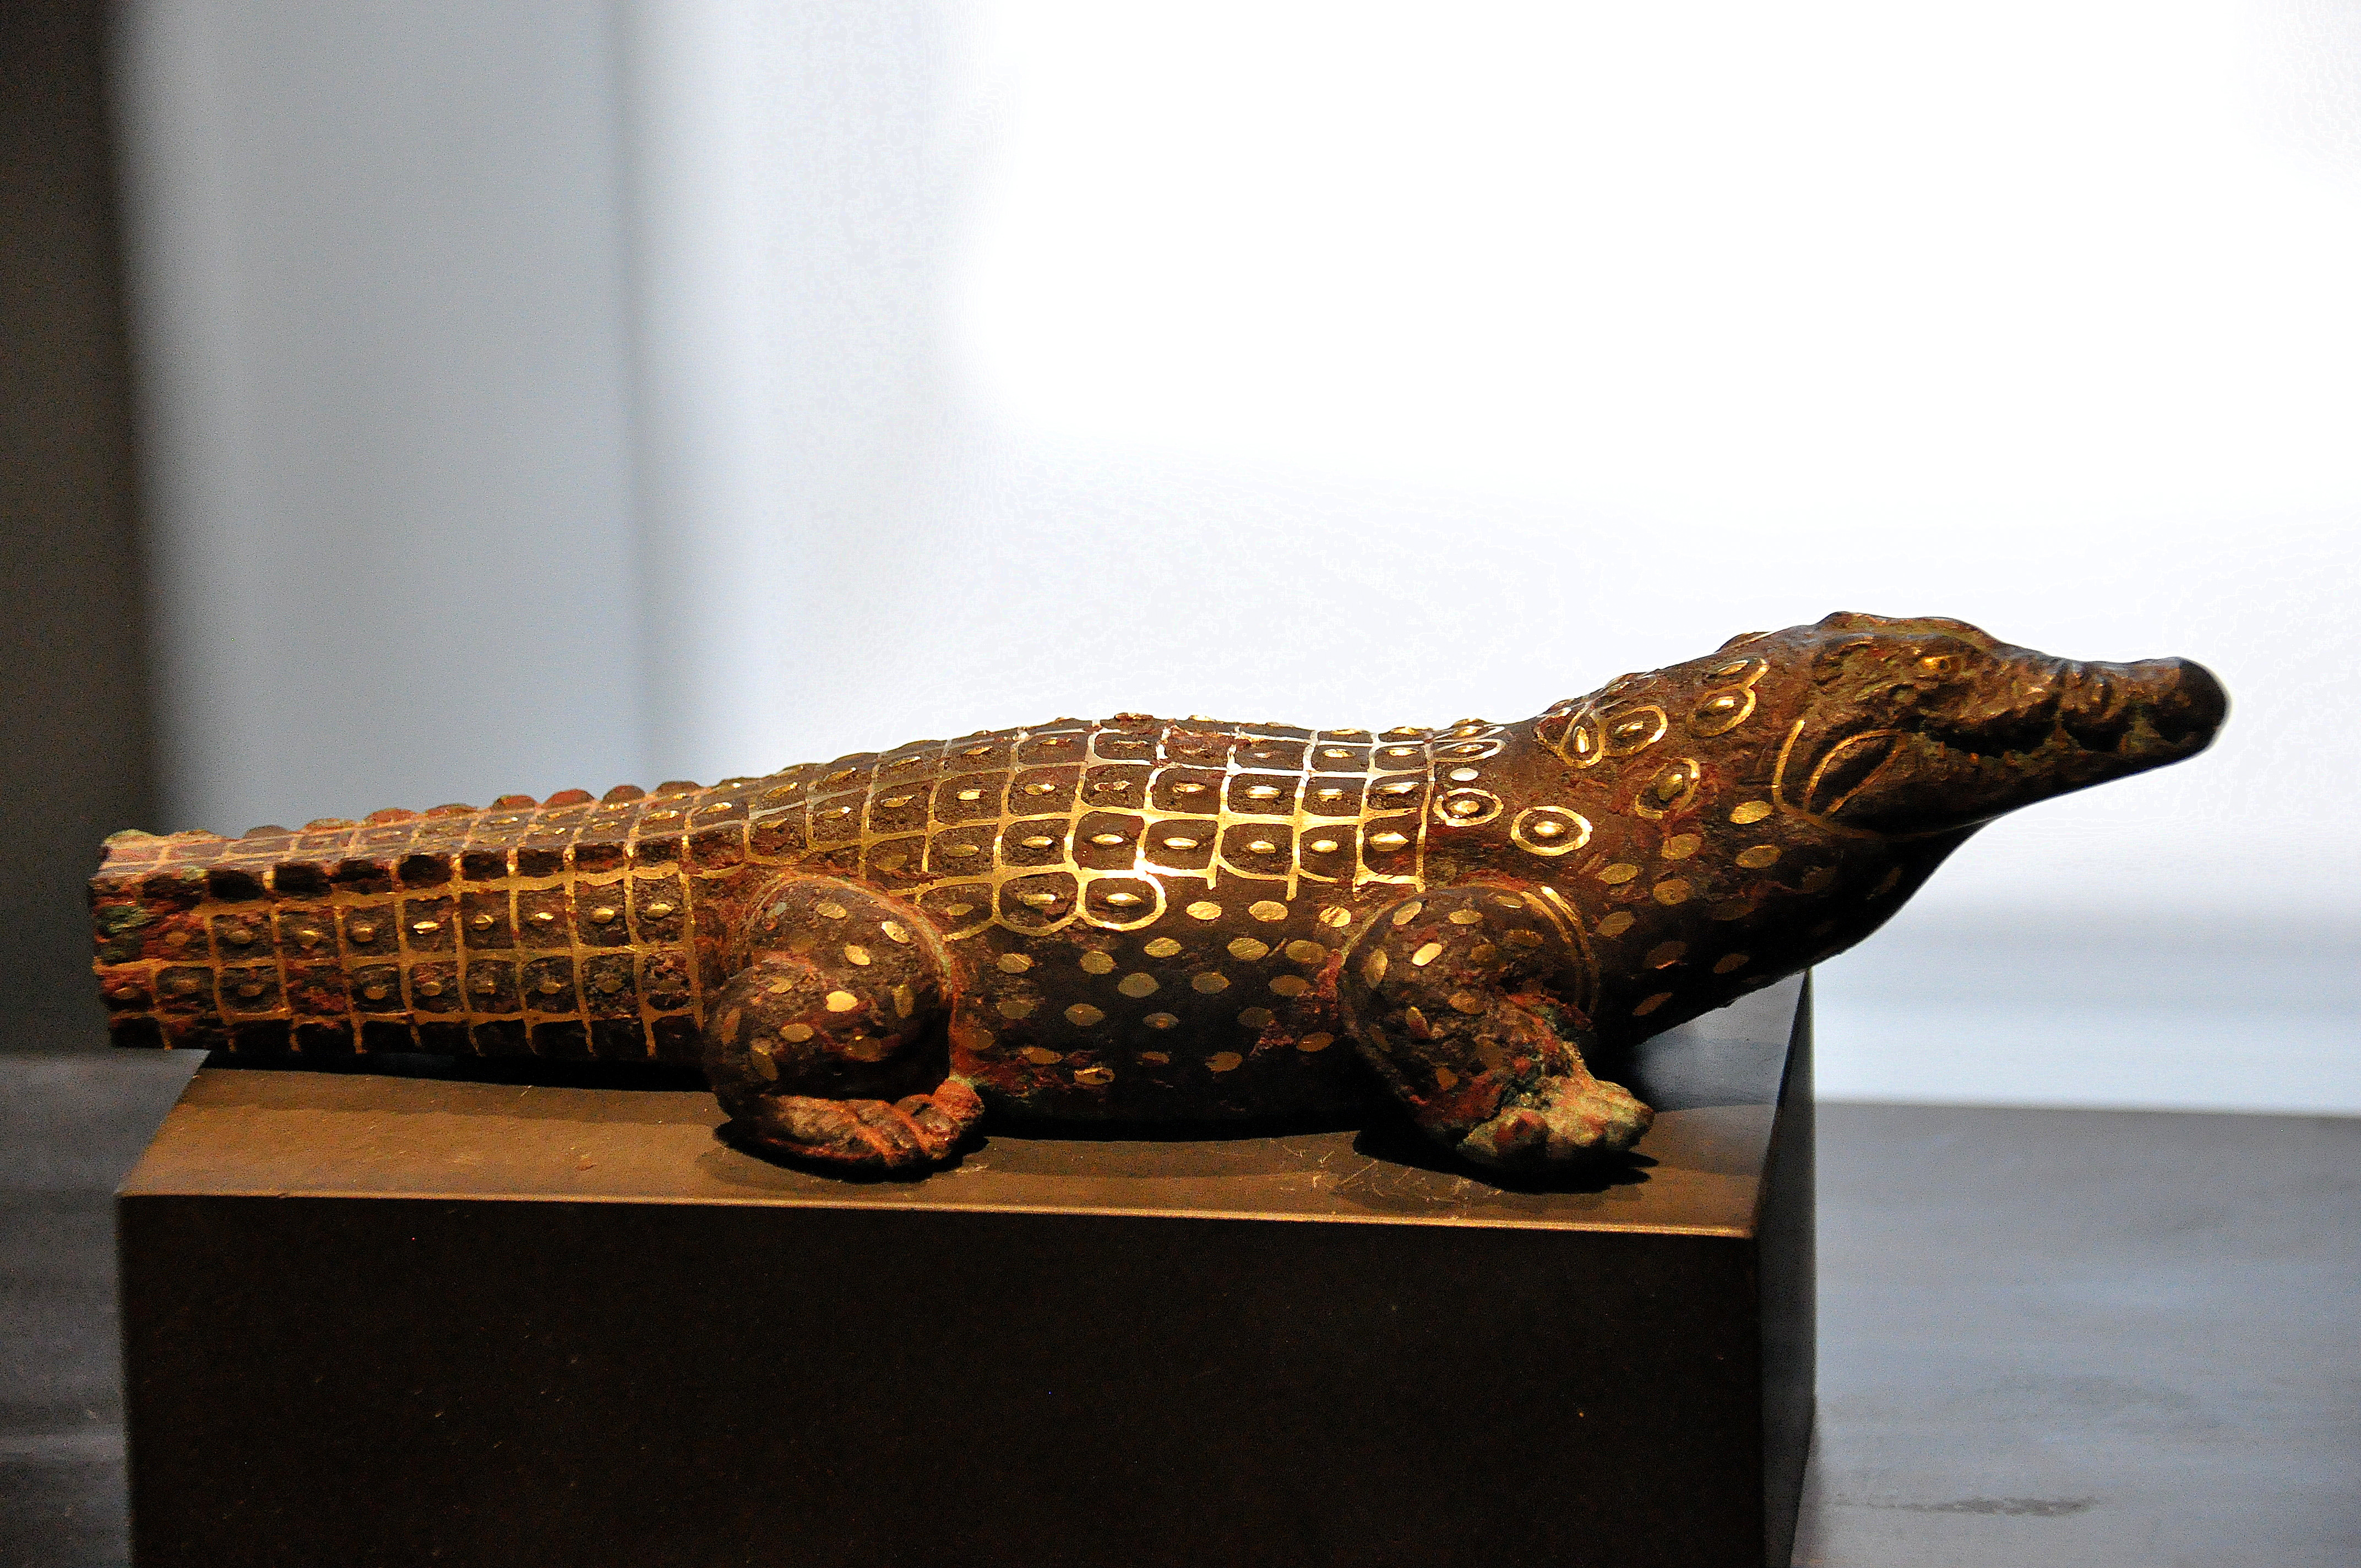 Pets in ancient egypt article ancient history encyclopedia crocodile statue from ancient egypt buycottarizona Image collections